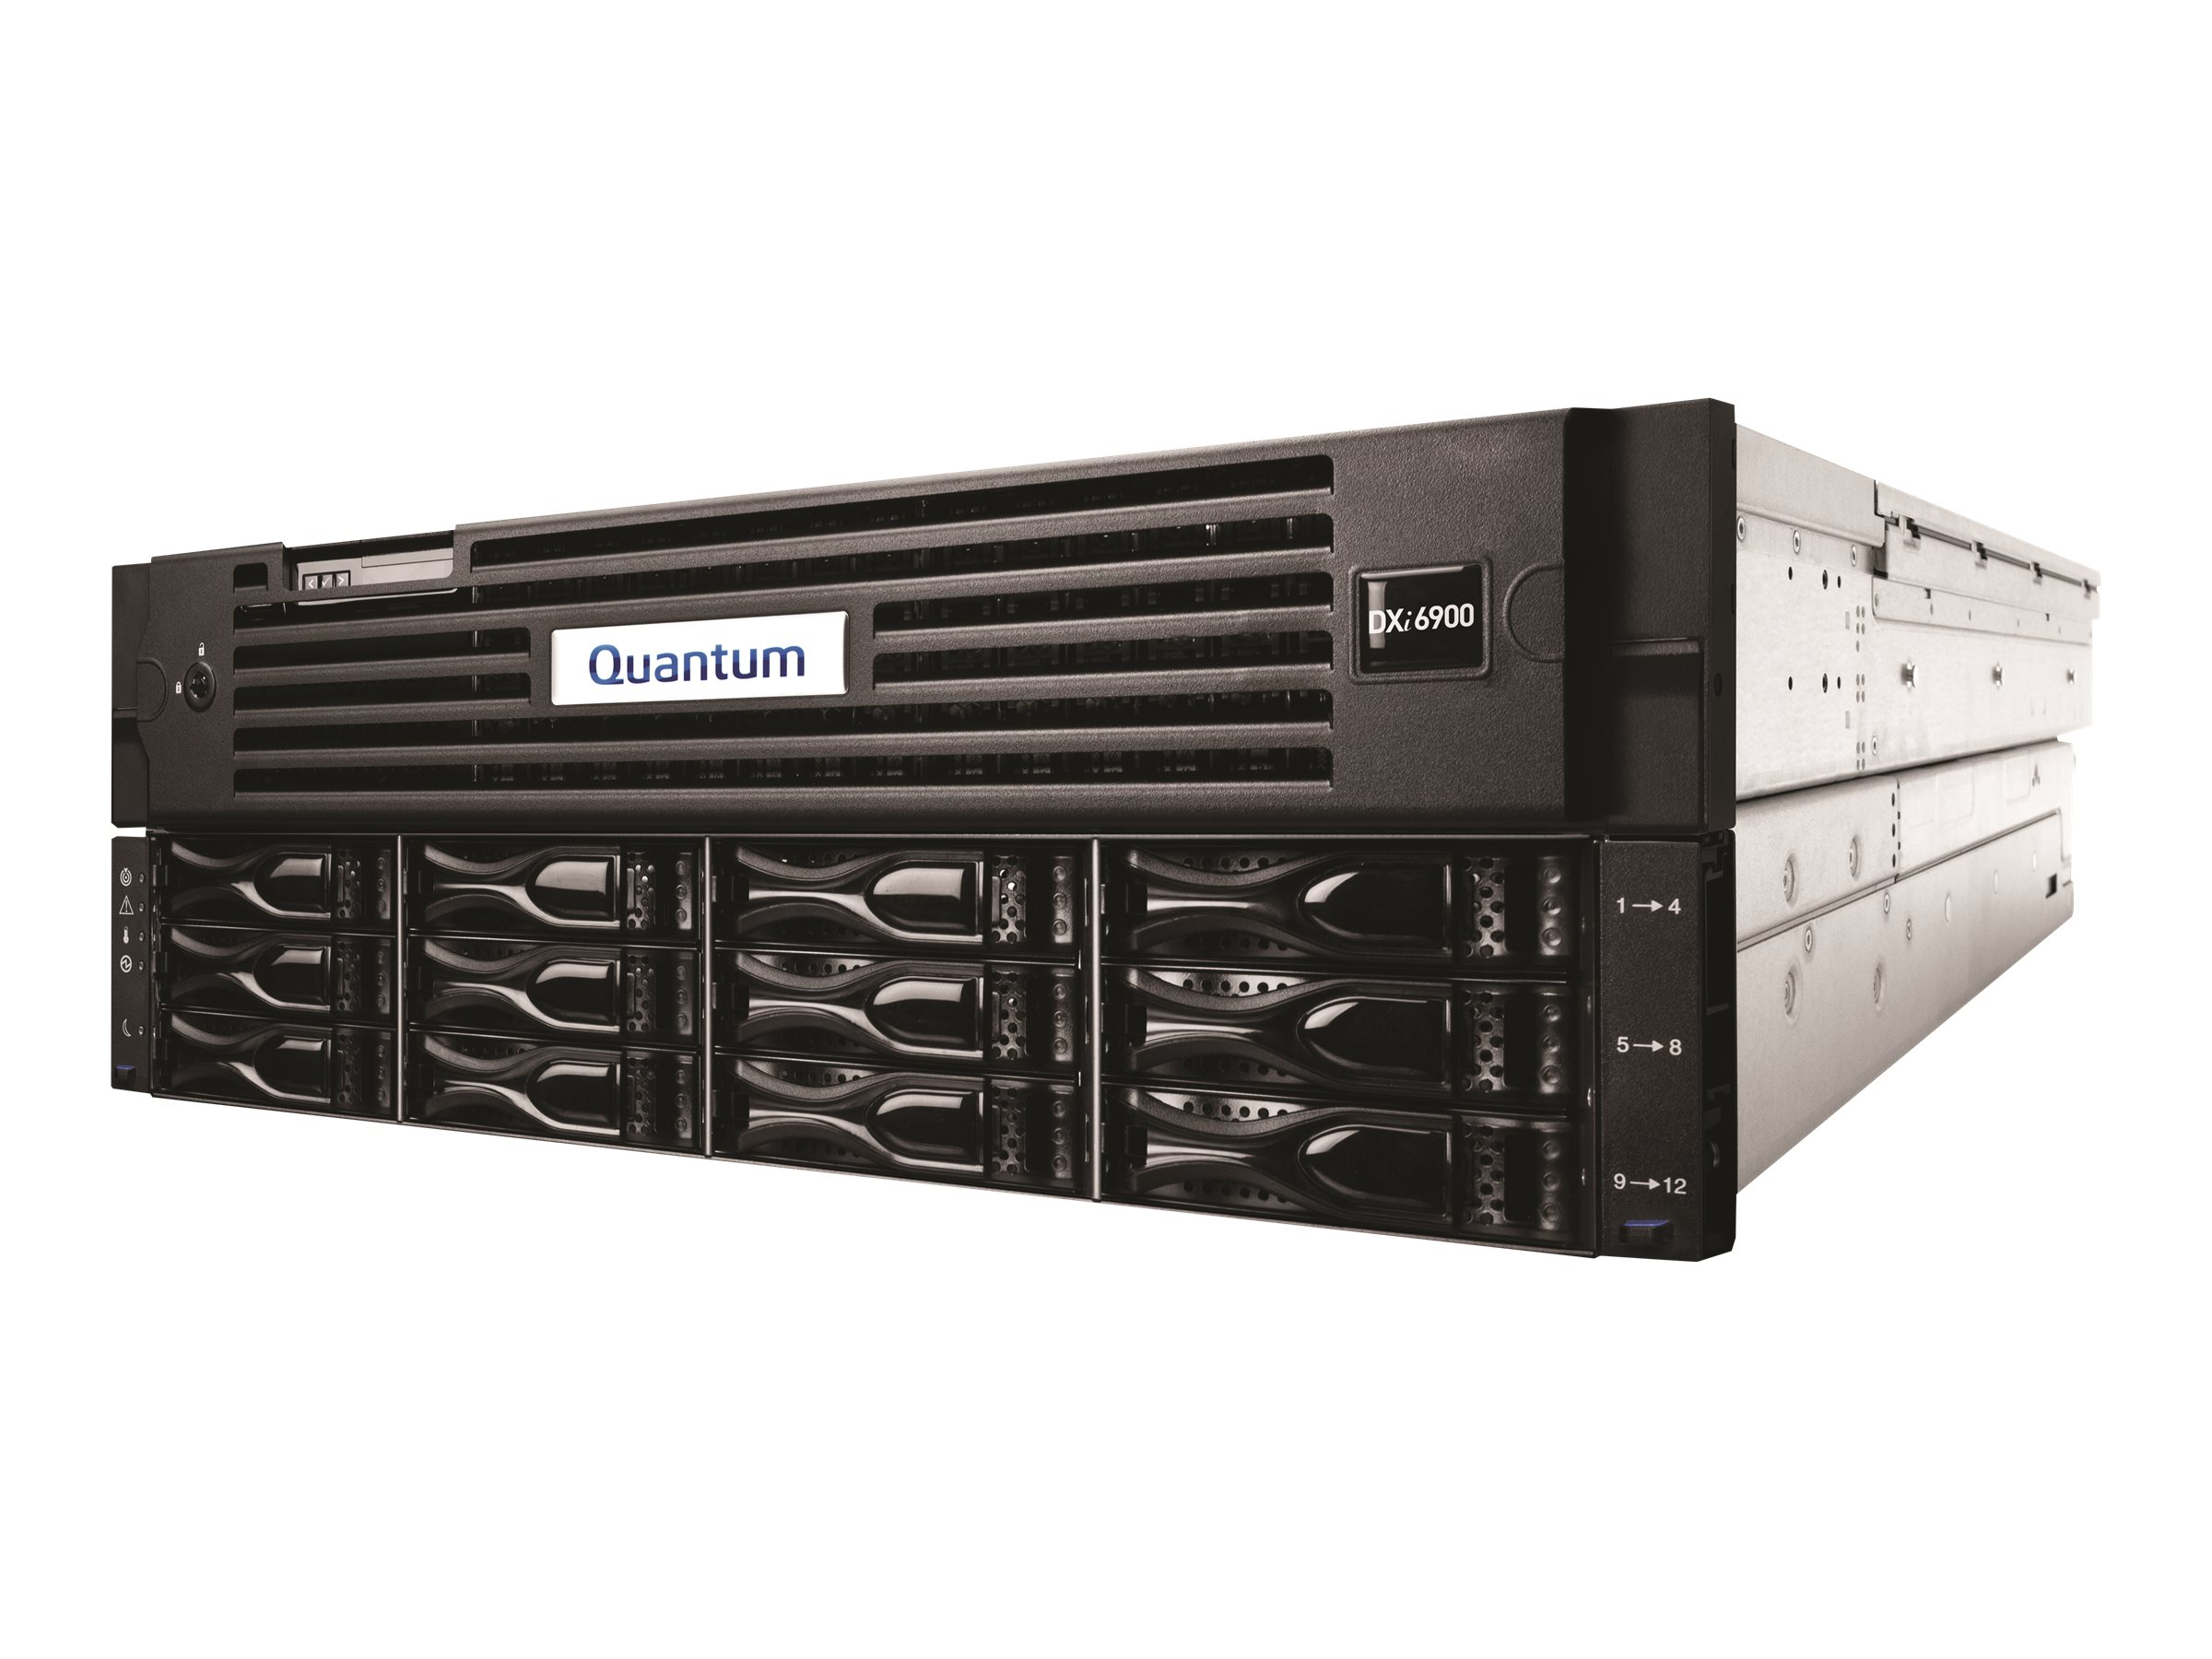 Quantum 17TB DXI6902 Disk Deduplication Backup Appliance, DDY69-CR02-017A, 17544371, Disk-Based Backup